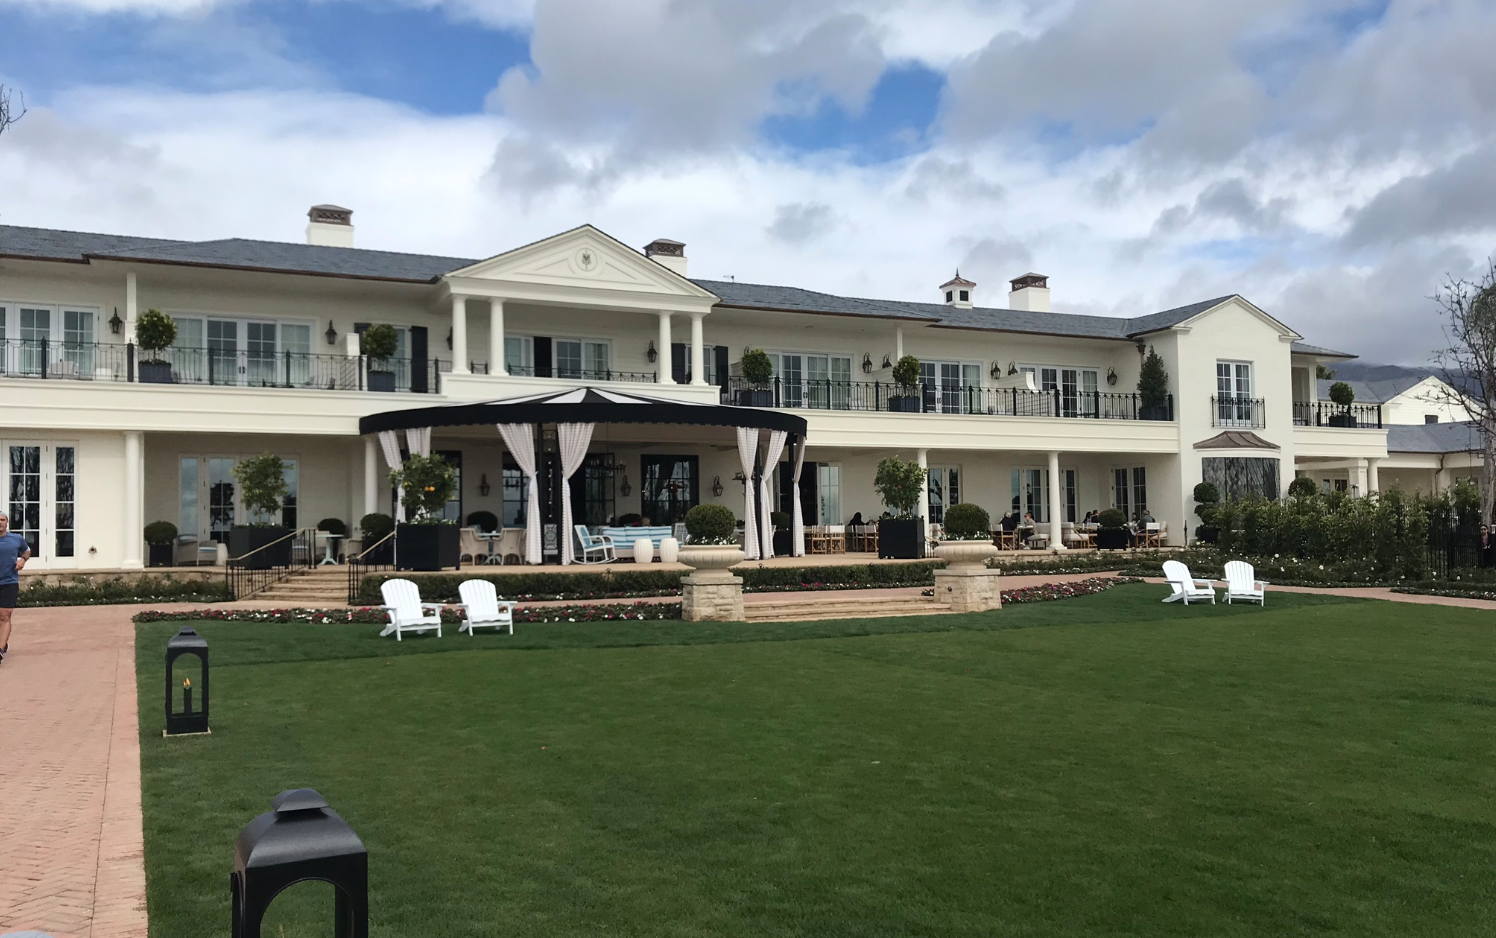 The New Miramar Hotel In Montecito Rosewood Miramar Beach Susan J Pate